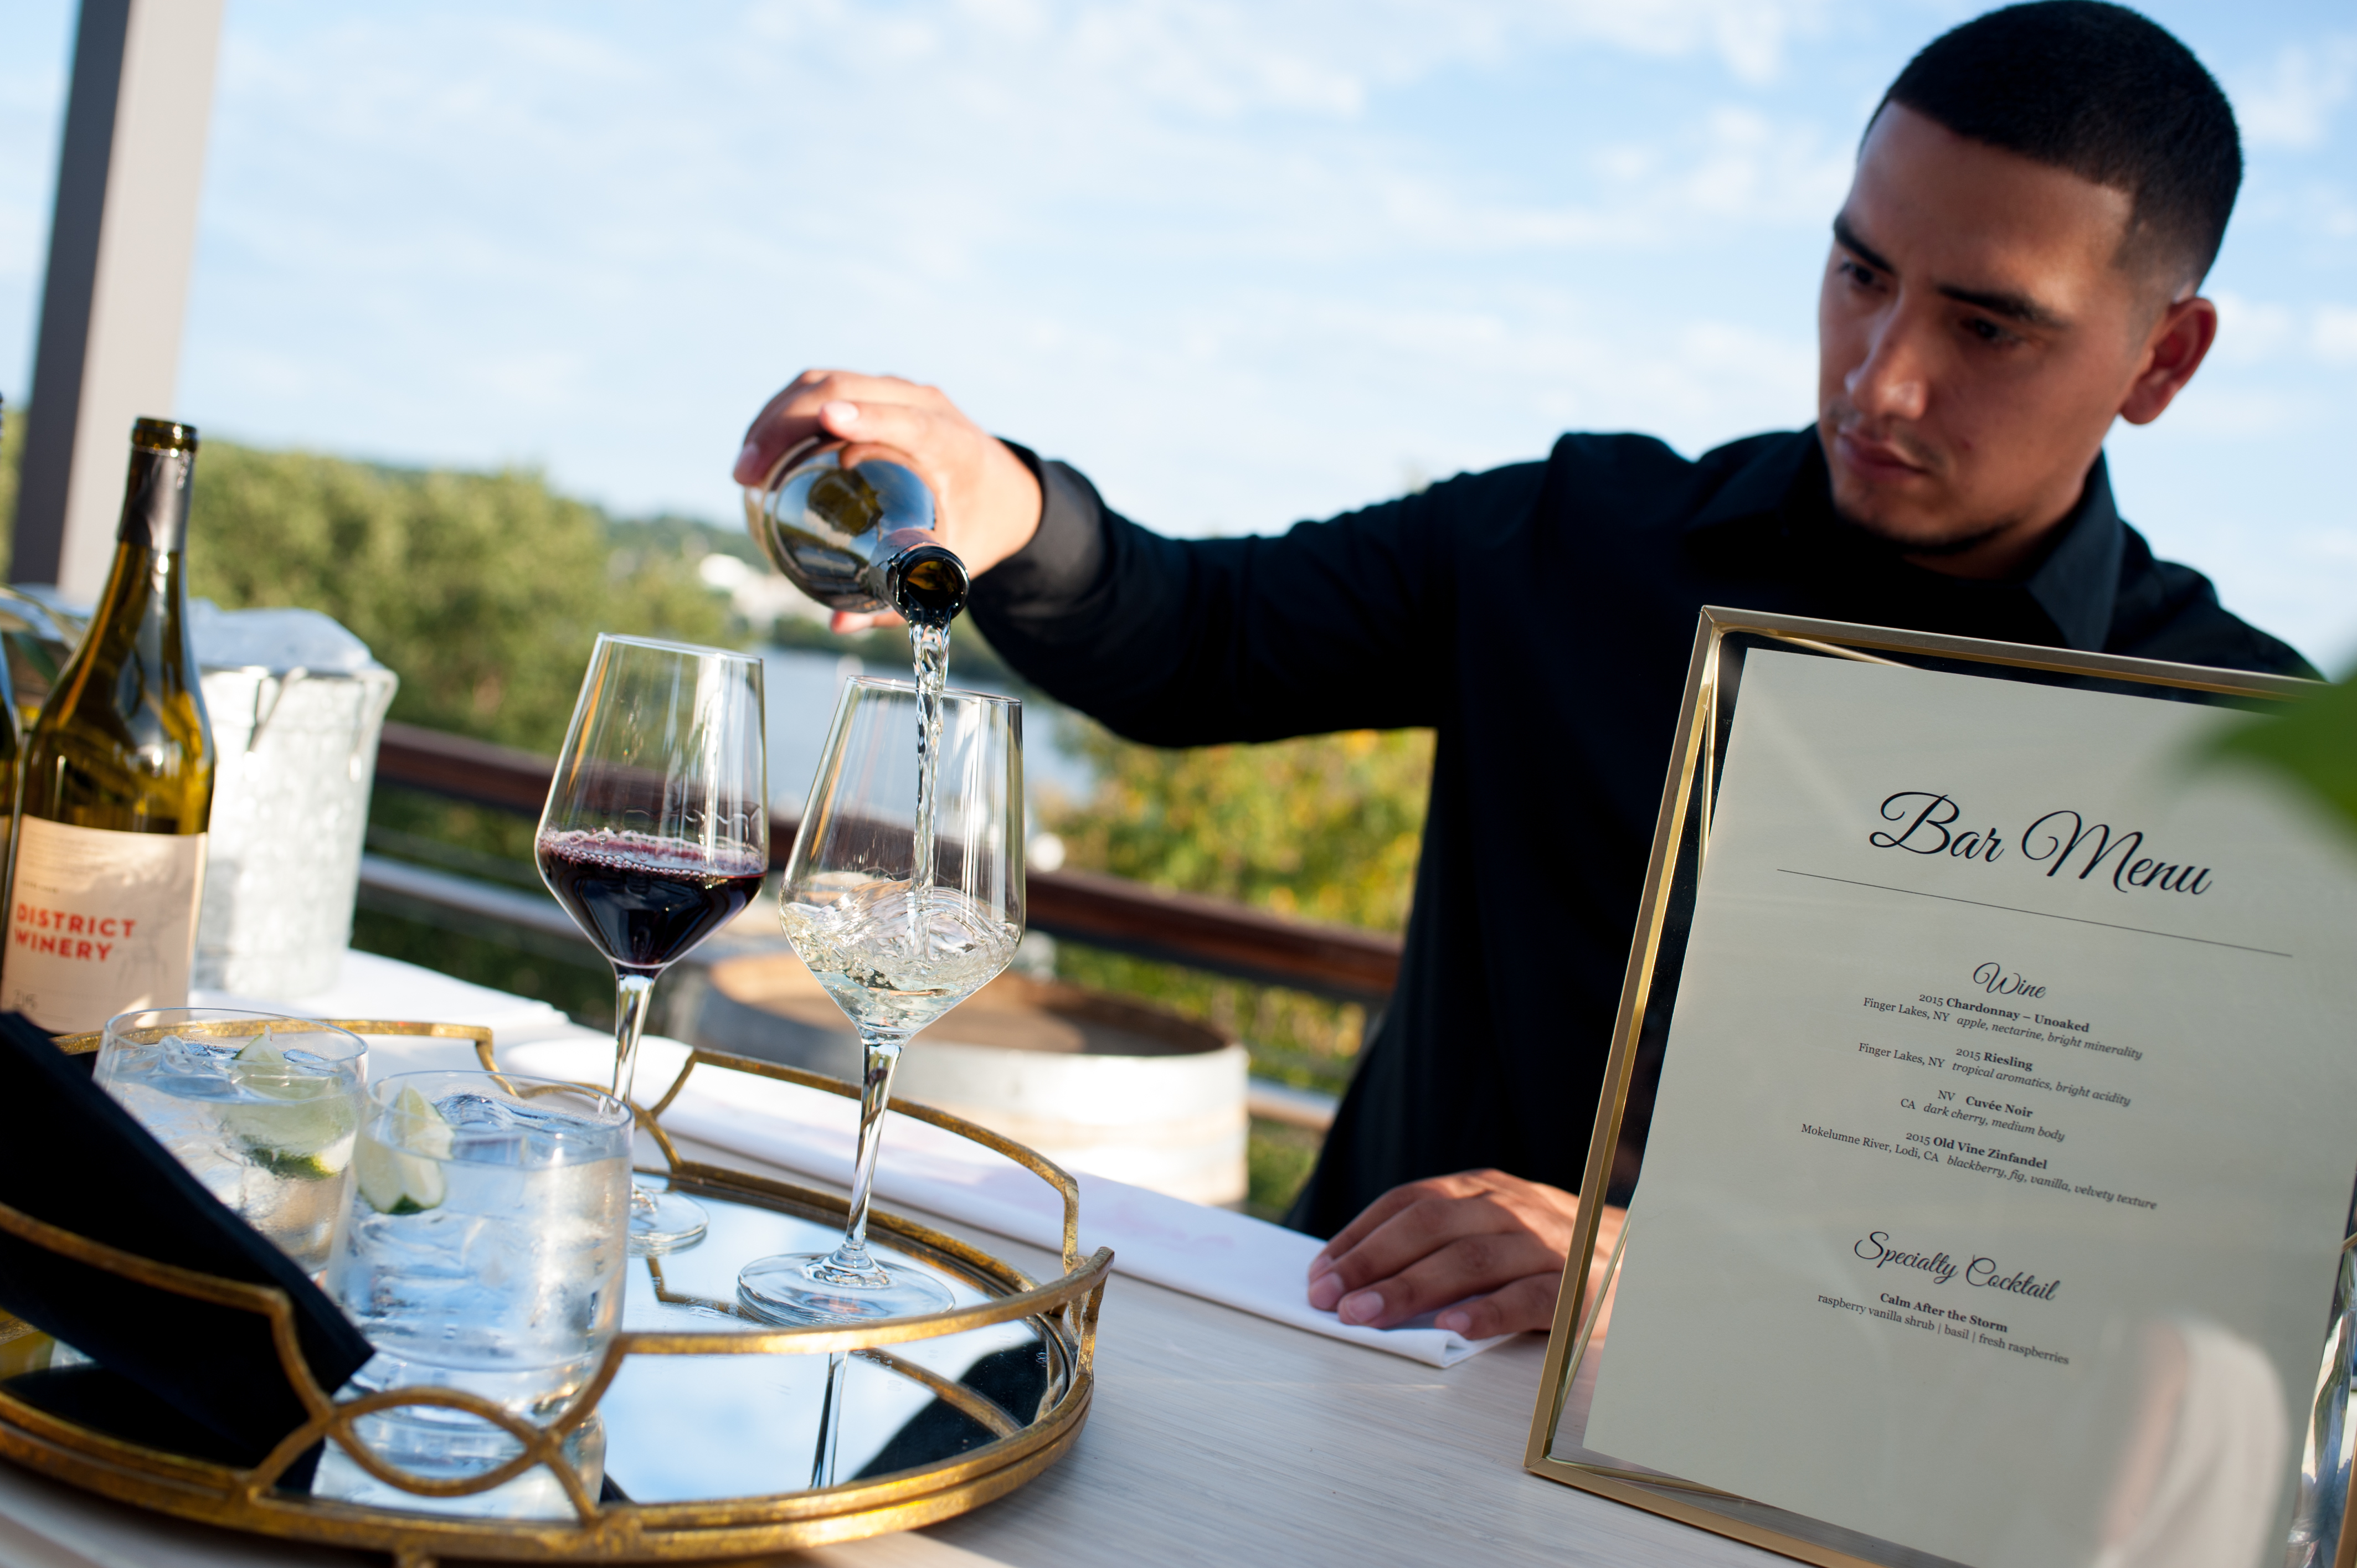 District Winery Exclusive Opening Dinner - Something Fabulous